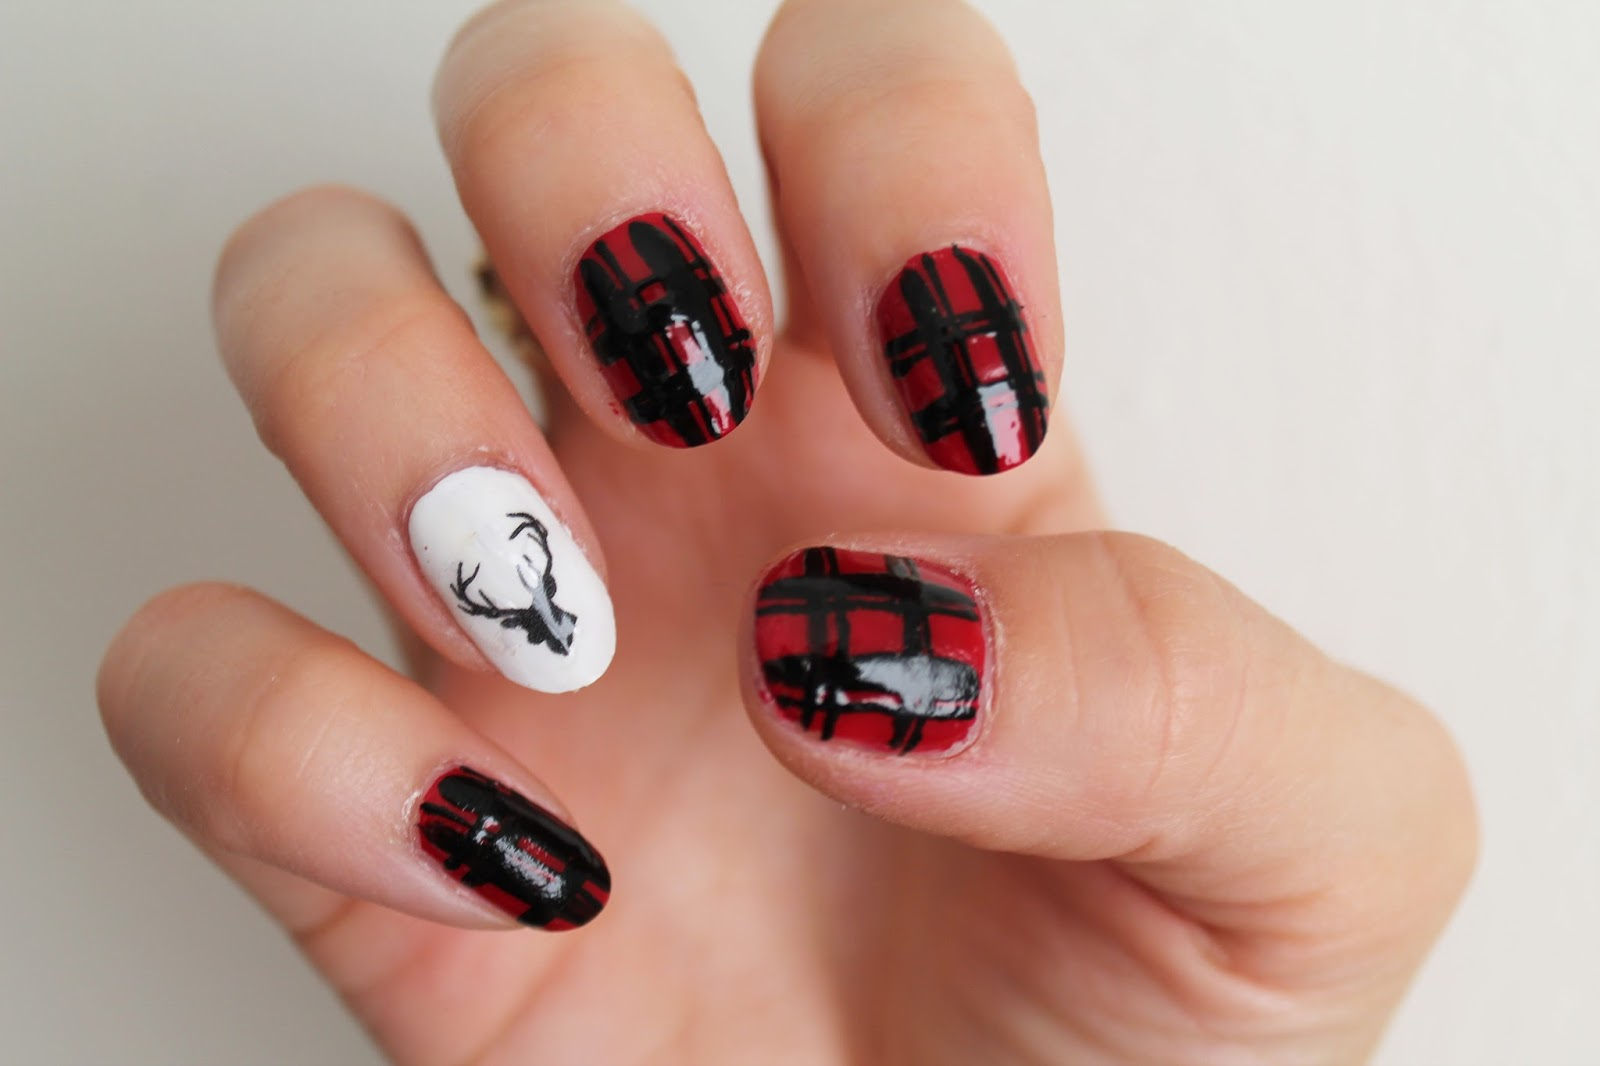 Holiday Nail Art and Cyber Monday - Jersey Girl, Texan Heart